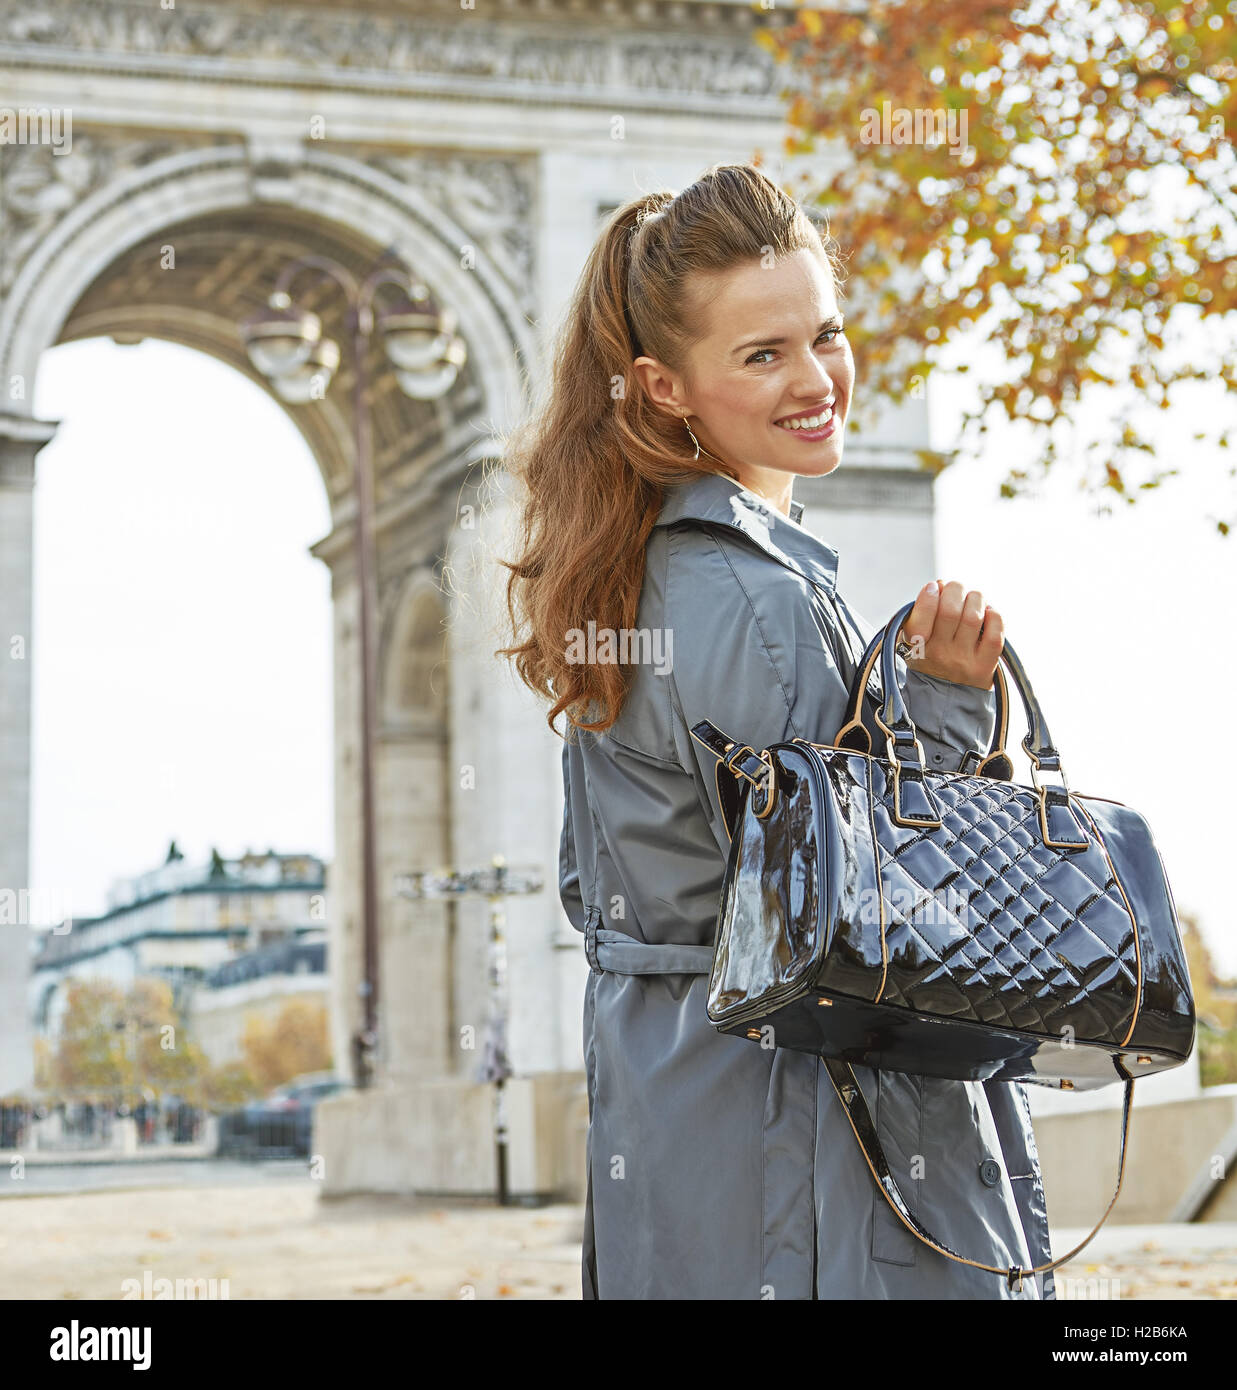 Stylish autumn in Paris. Portrait of happy young fashion-monger in trench coat in Paris, France - Stock Image